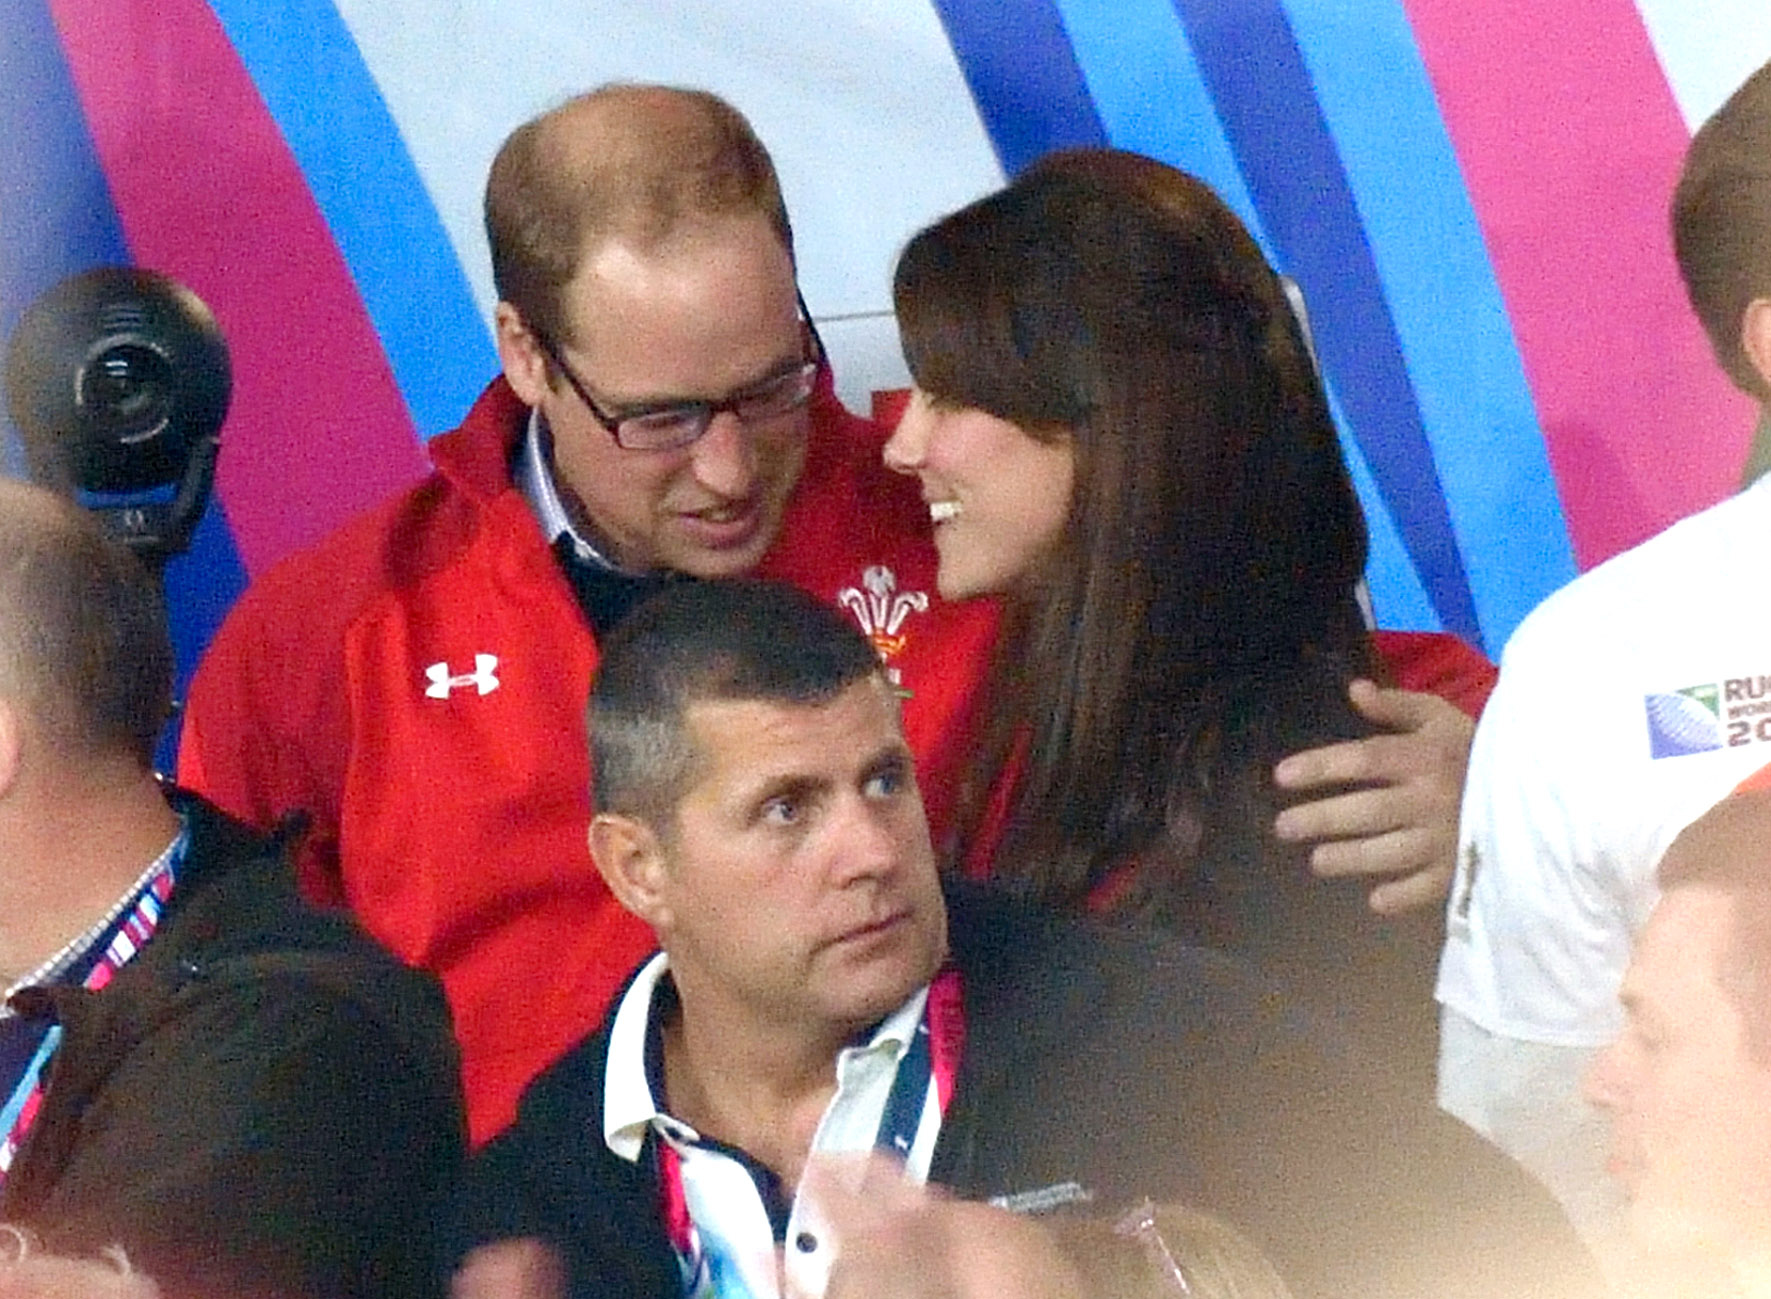 The Duke and Duchess of Cambridge are positively adorable during the Rugby World Cup